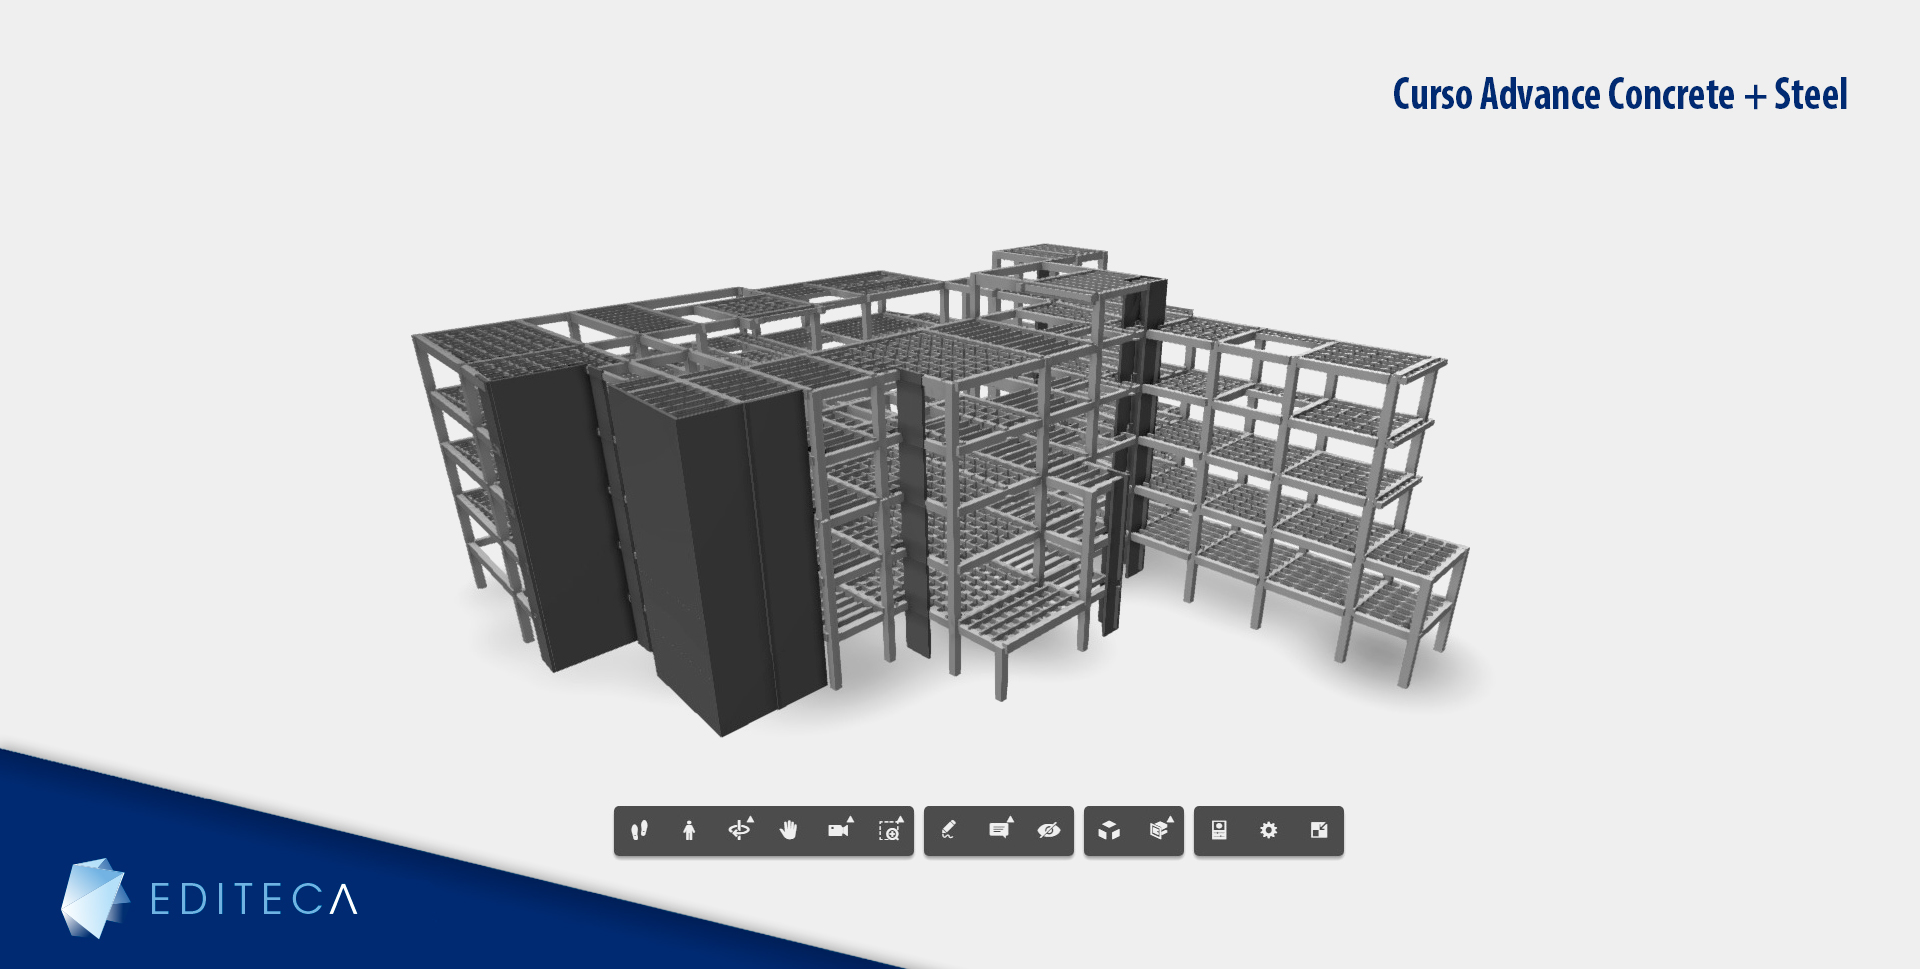 proyecto curso advance concrete and steel